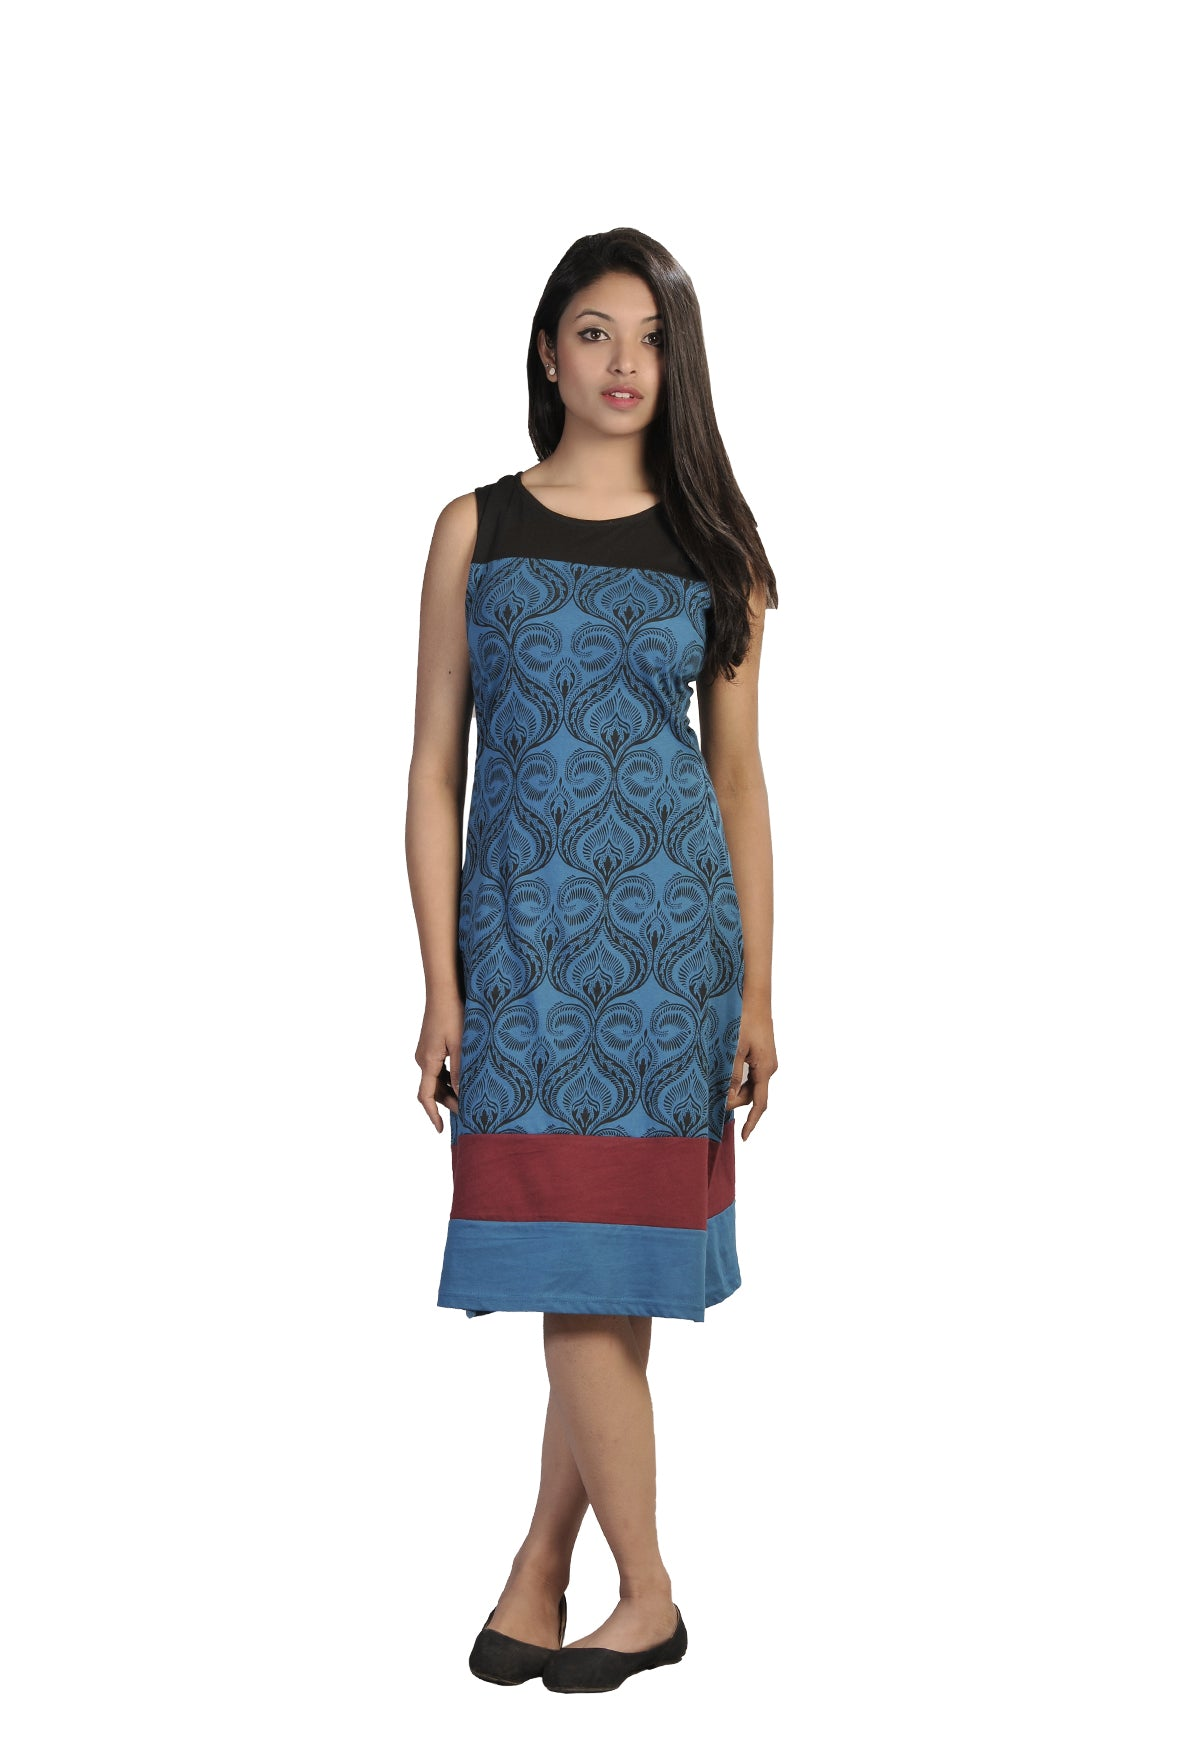 Ladies Summer Sleeveless Dress with Damask Pattern Print and Patch Design - Craze Trade Limited